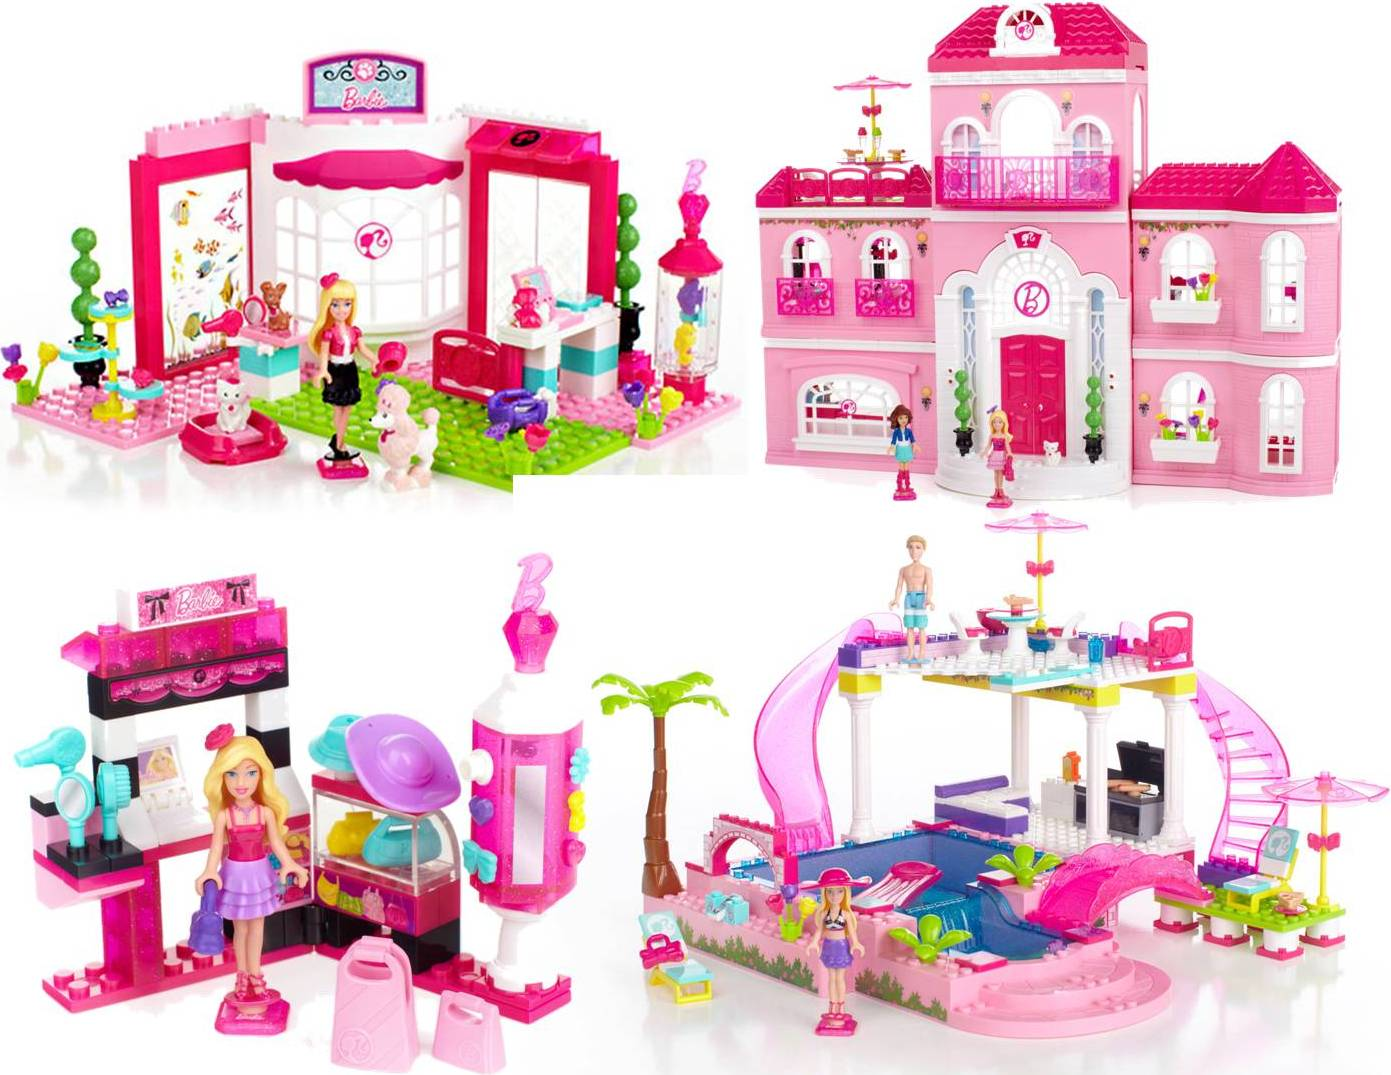 Juegos De Barbie En La Piscina Barbie Toysmaniatic